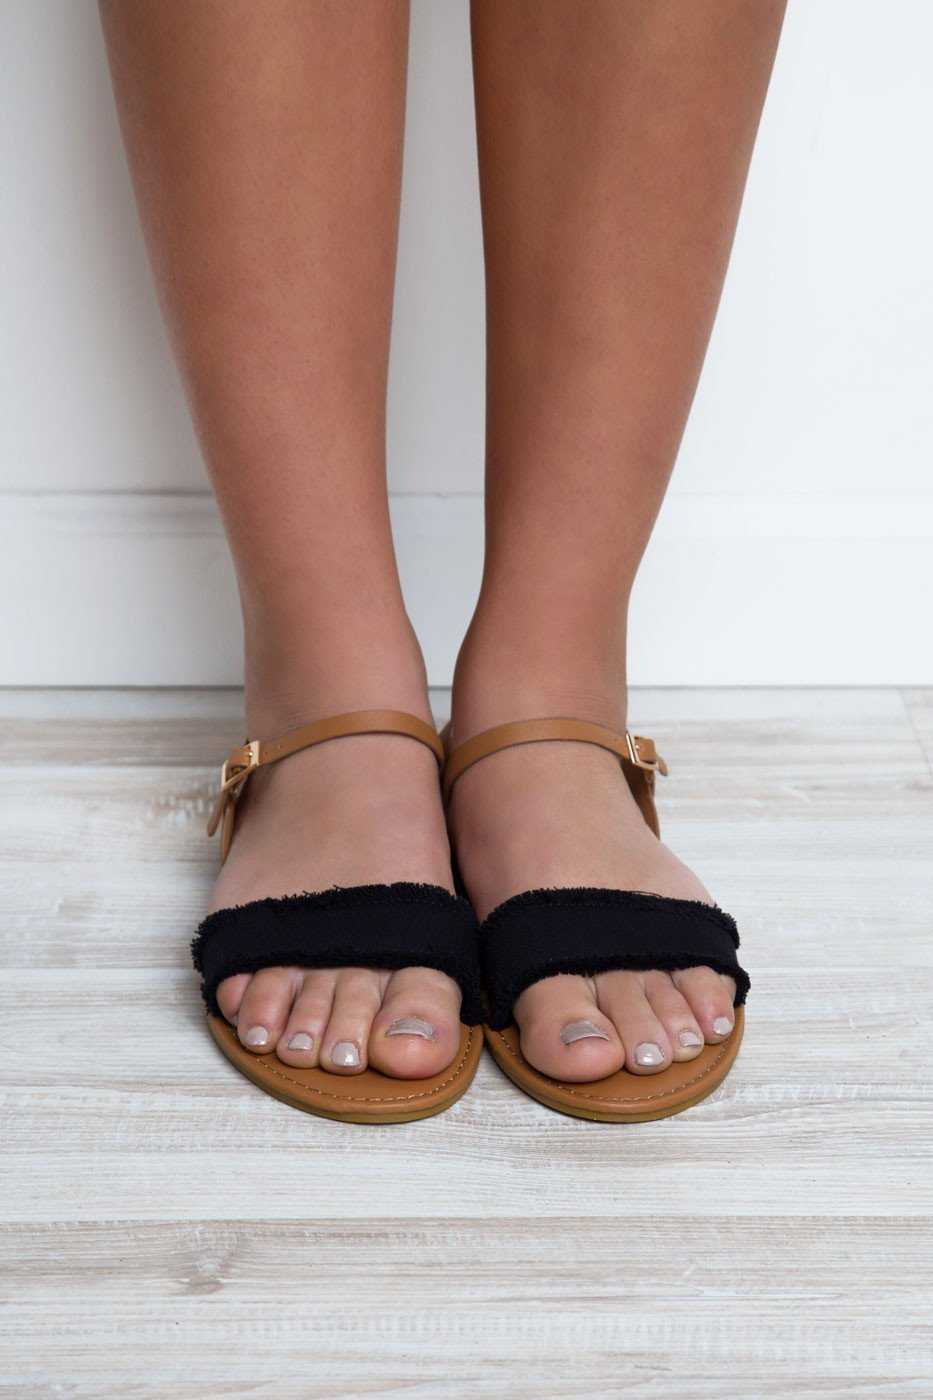 Shoes - Vacation Time Sandals - Black